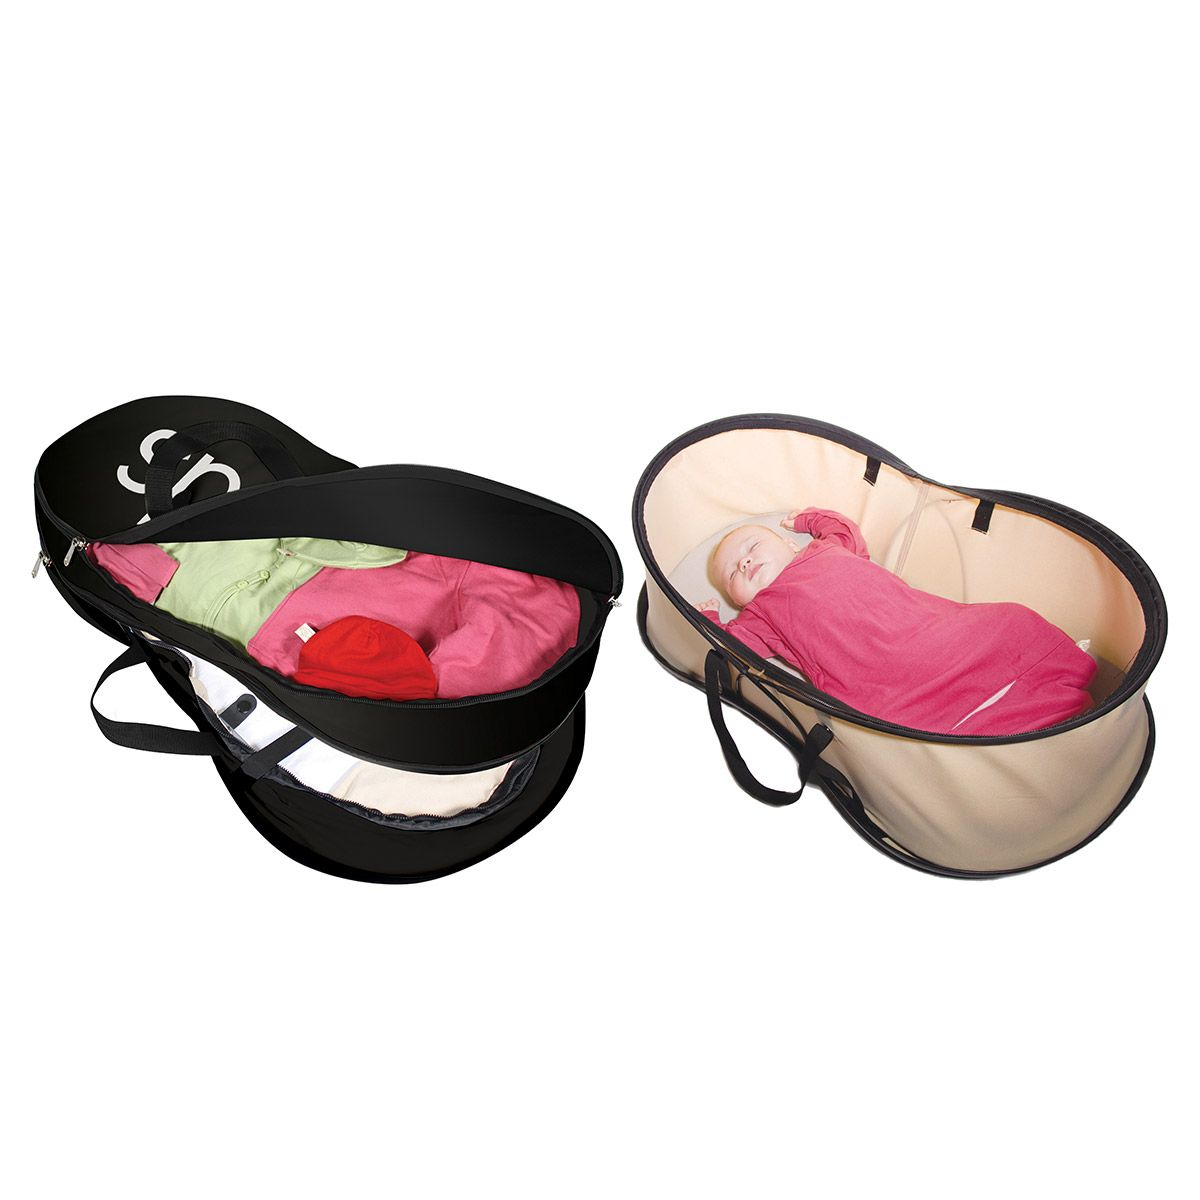 Philteds Nest Compact Bag And Bed Beige Phil Teds Sleep System